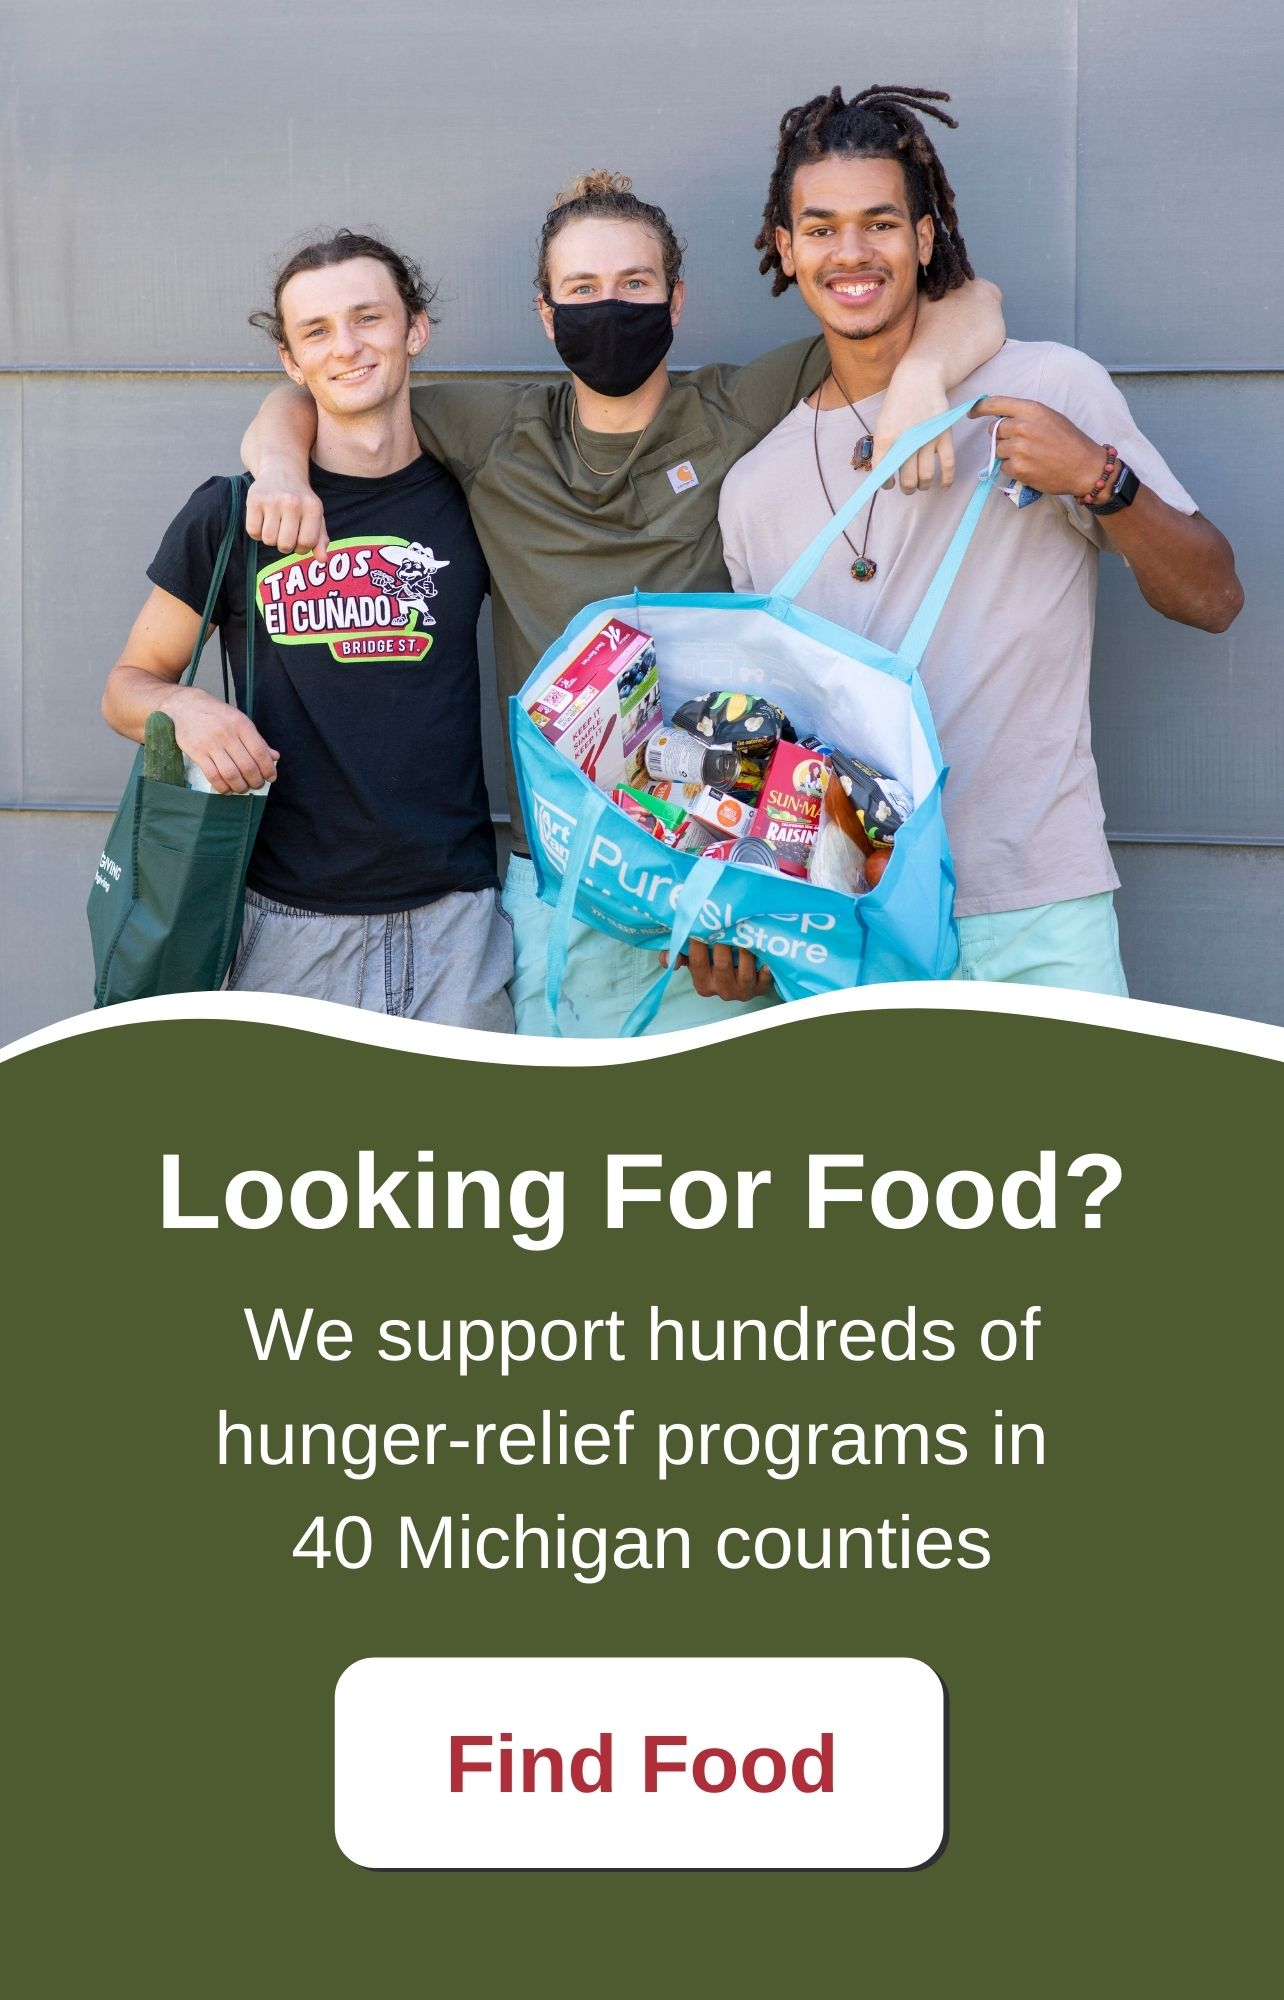 Looking for food? We support over 800 hunger-relief programs in 40 Michigan counties. Find Food.